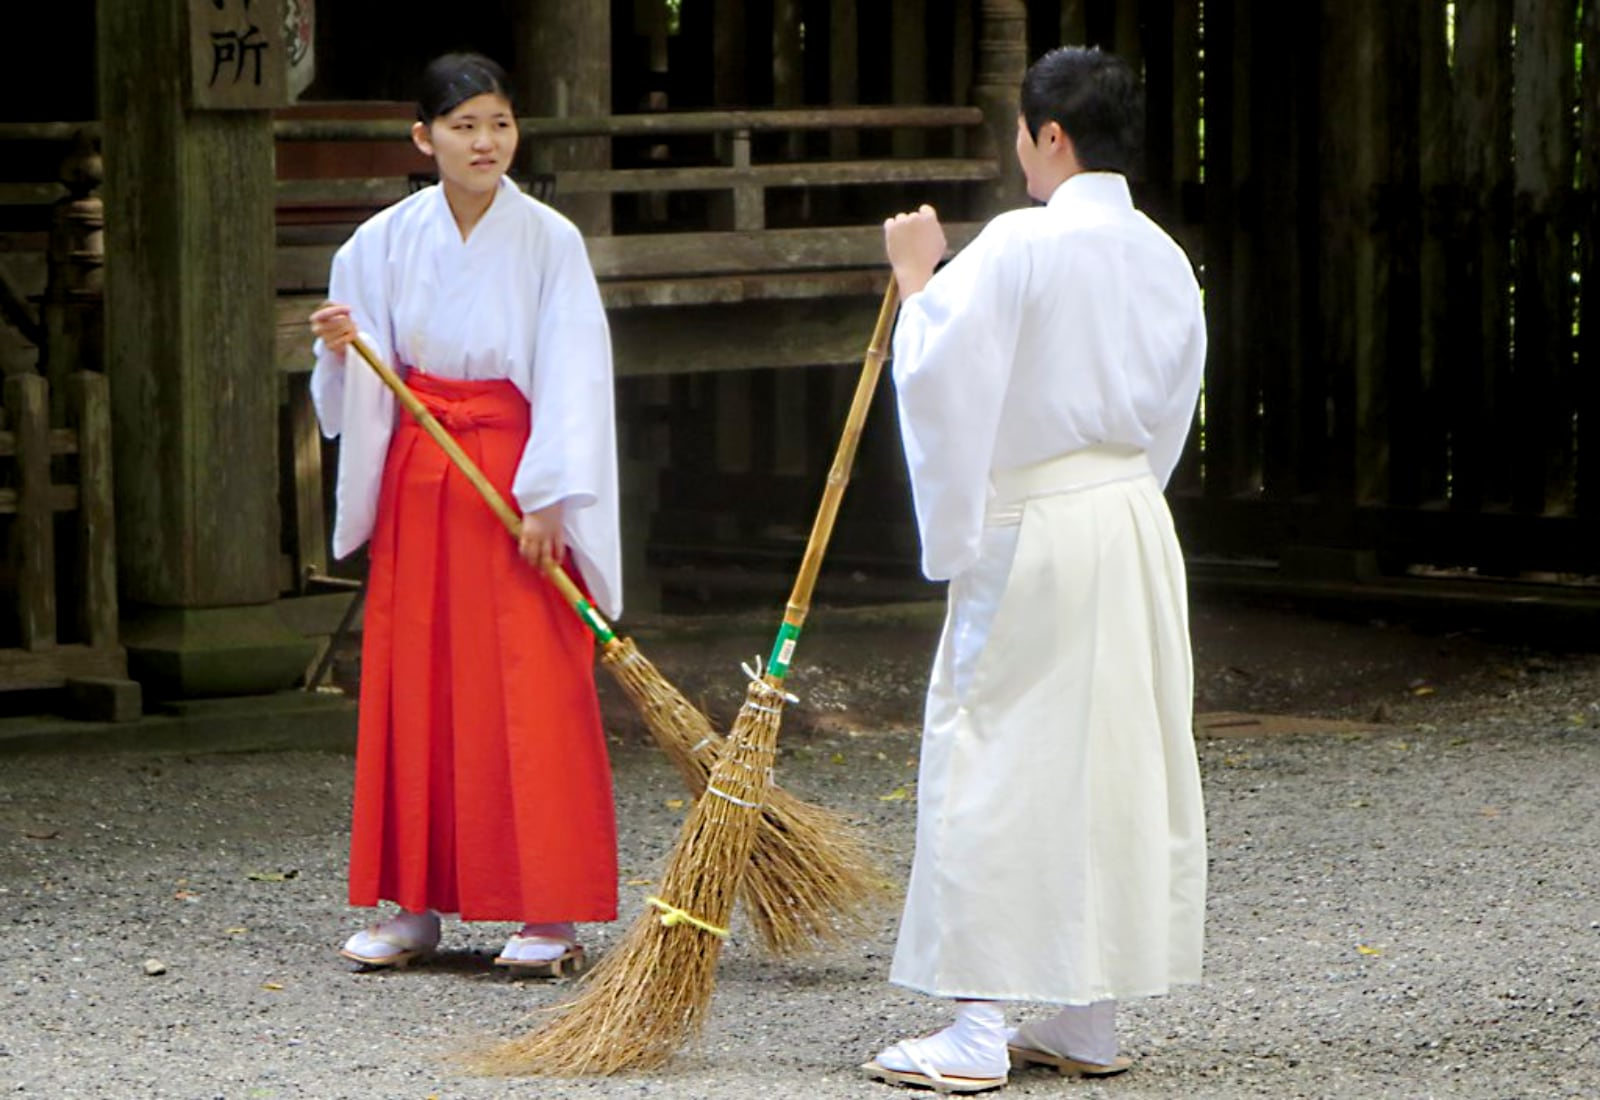 Shrine keepers sweeping - Decluttering